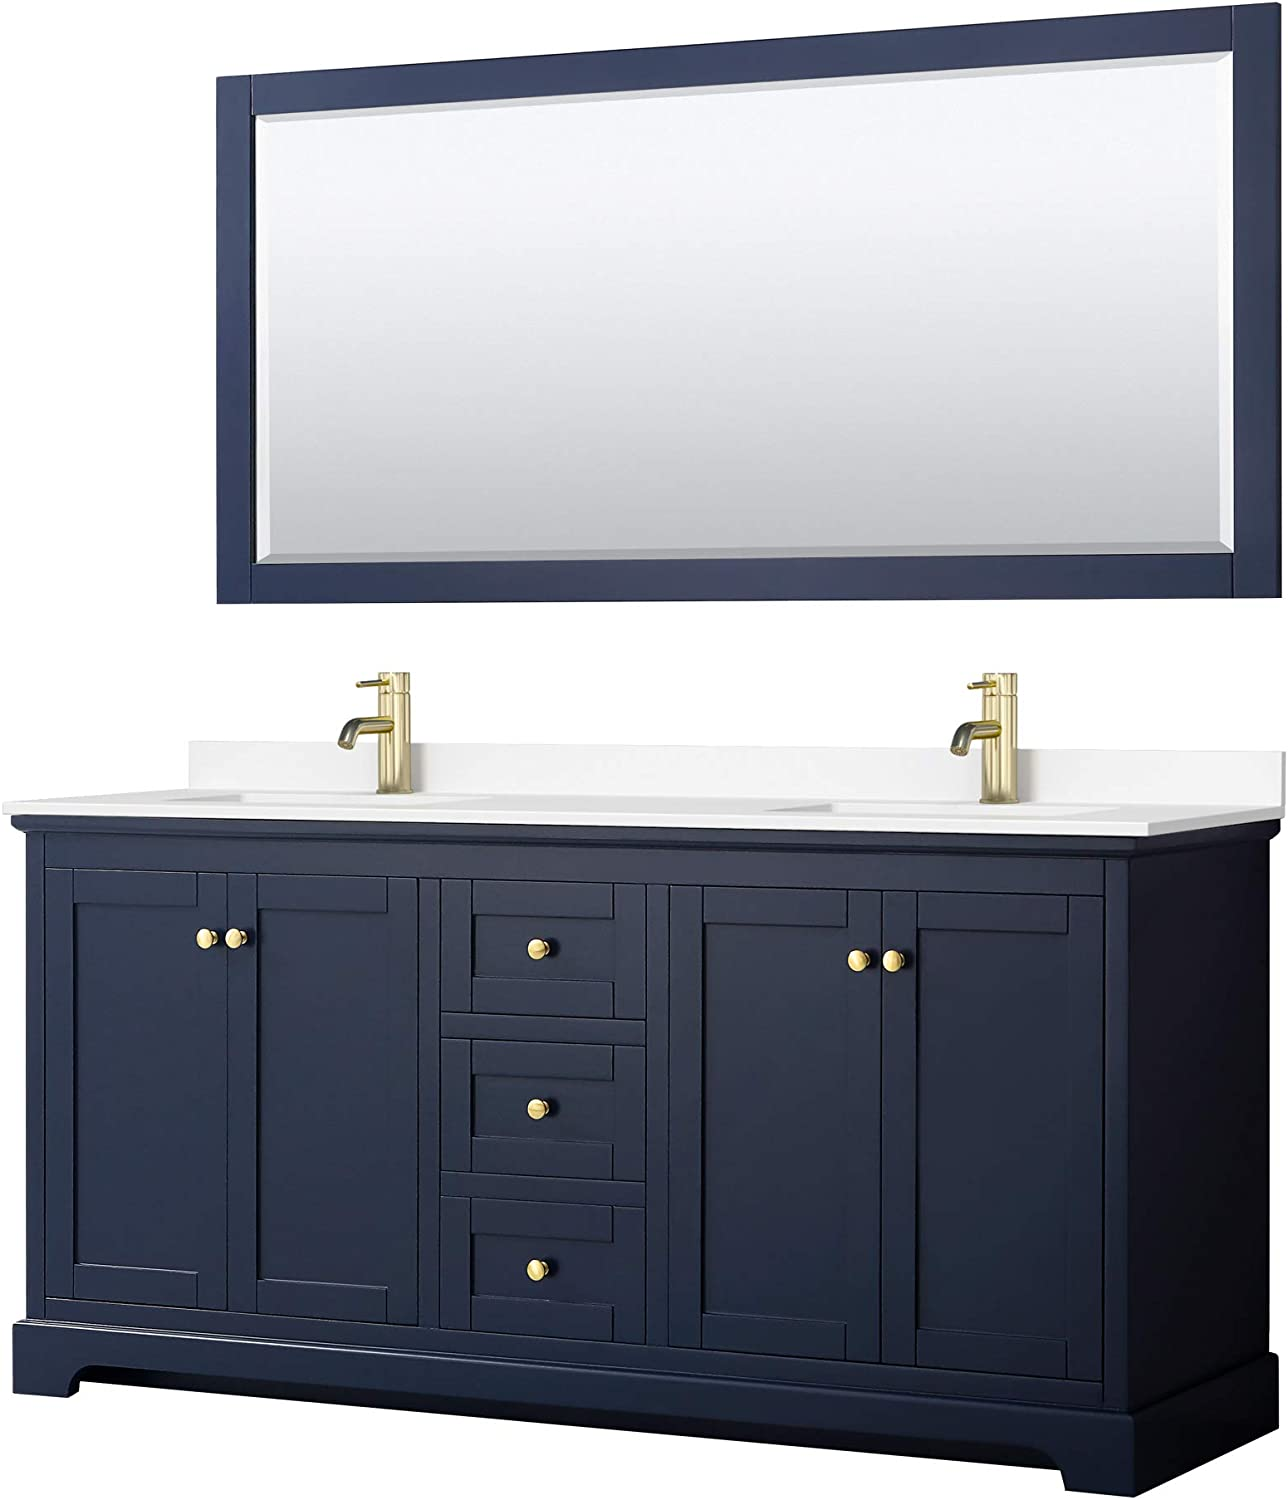 Avery 20 Inch Double Bathroom Vanity White in Fixed price for sale ...